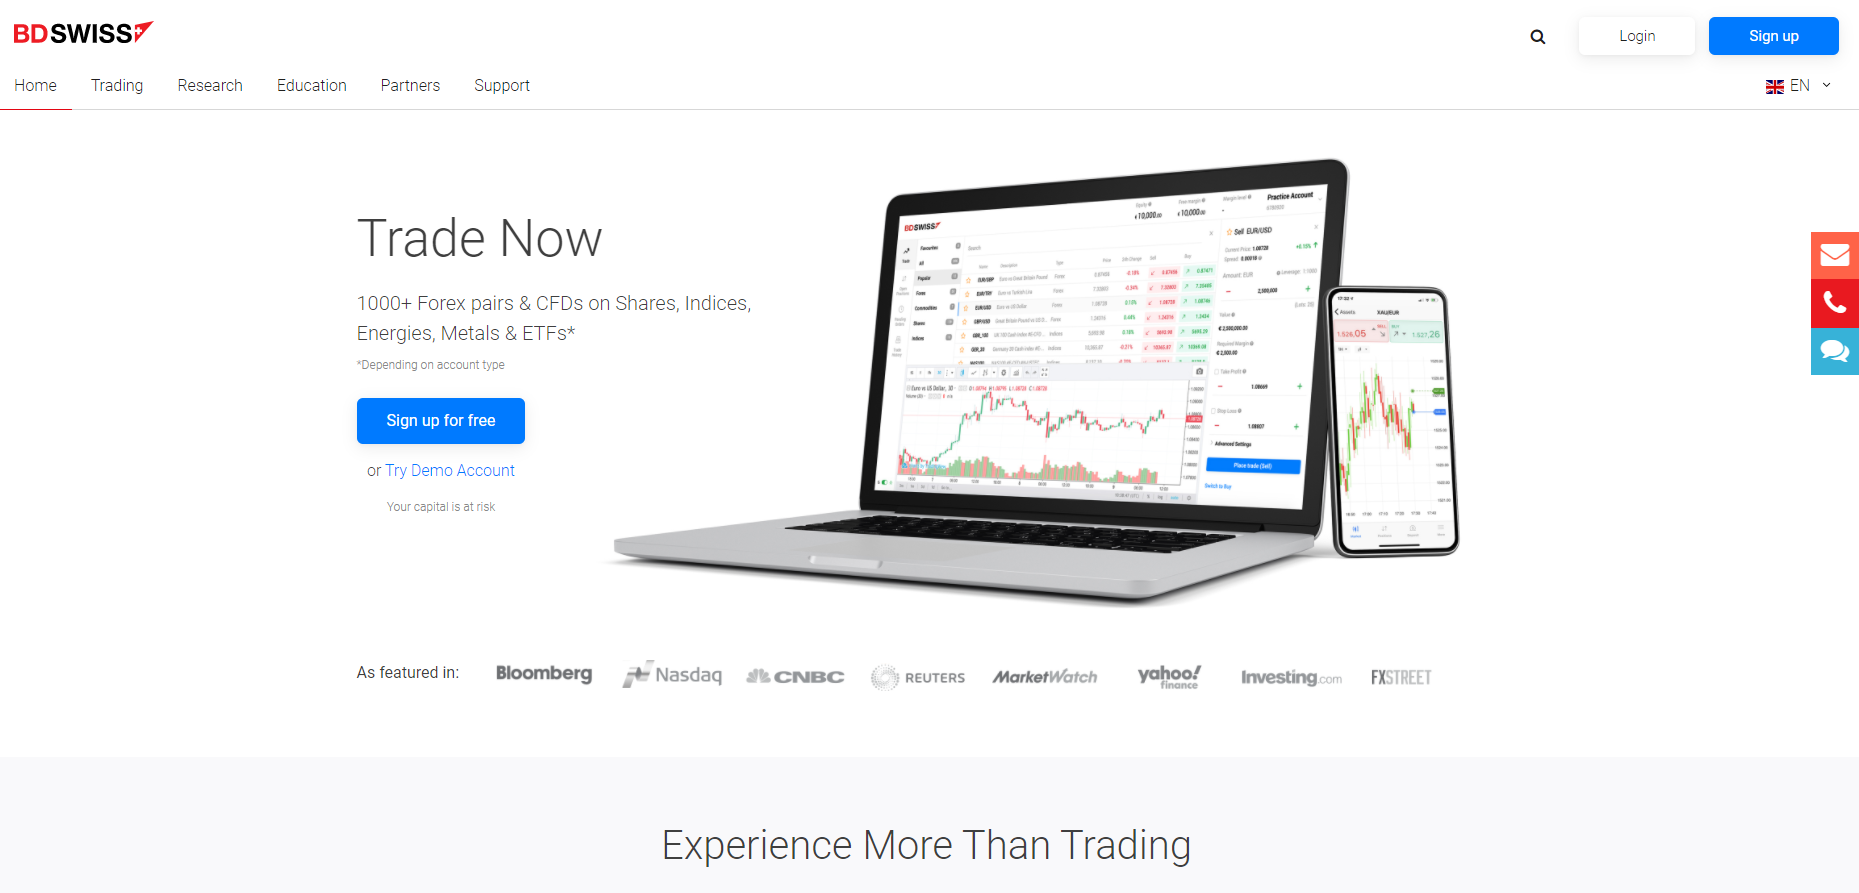 Official website of the forex broker BDSwiss in Europe